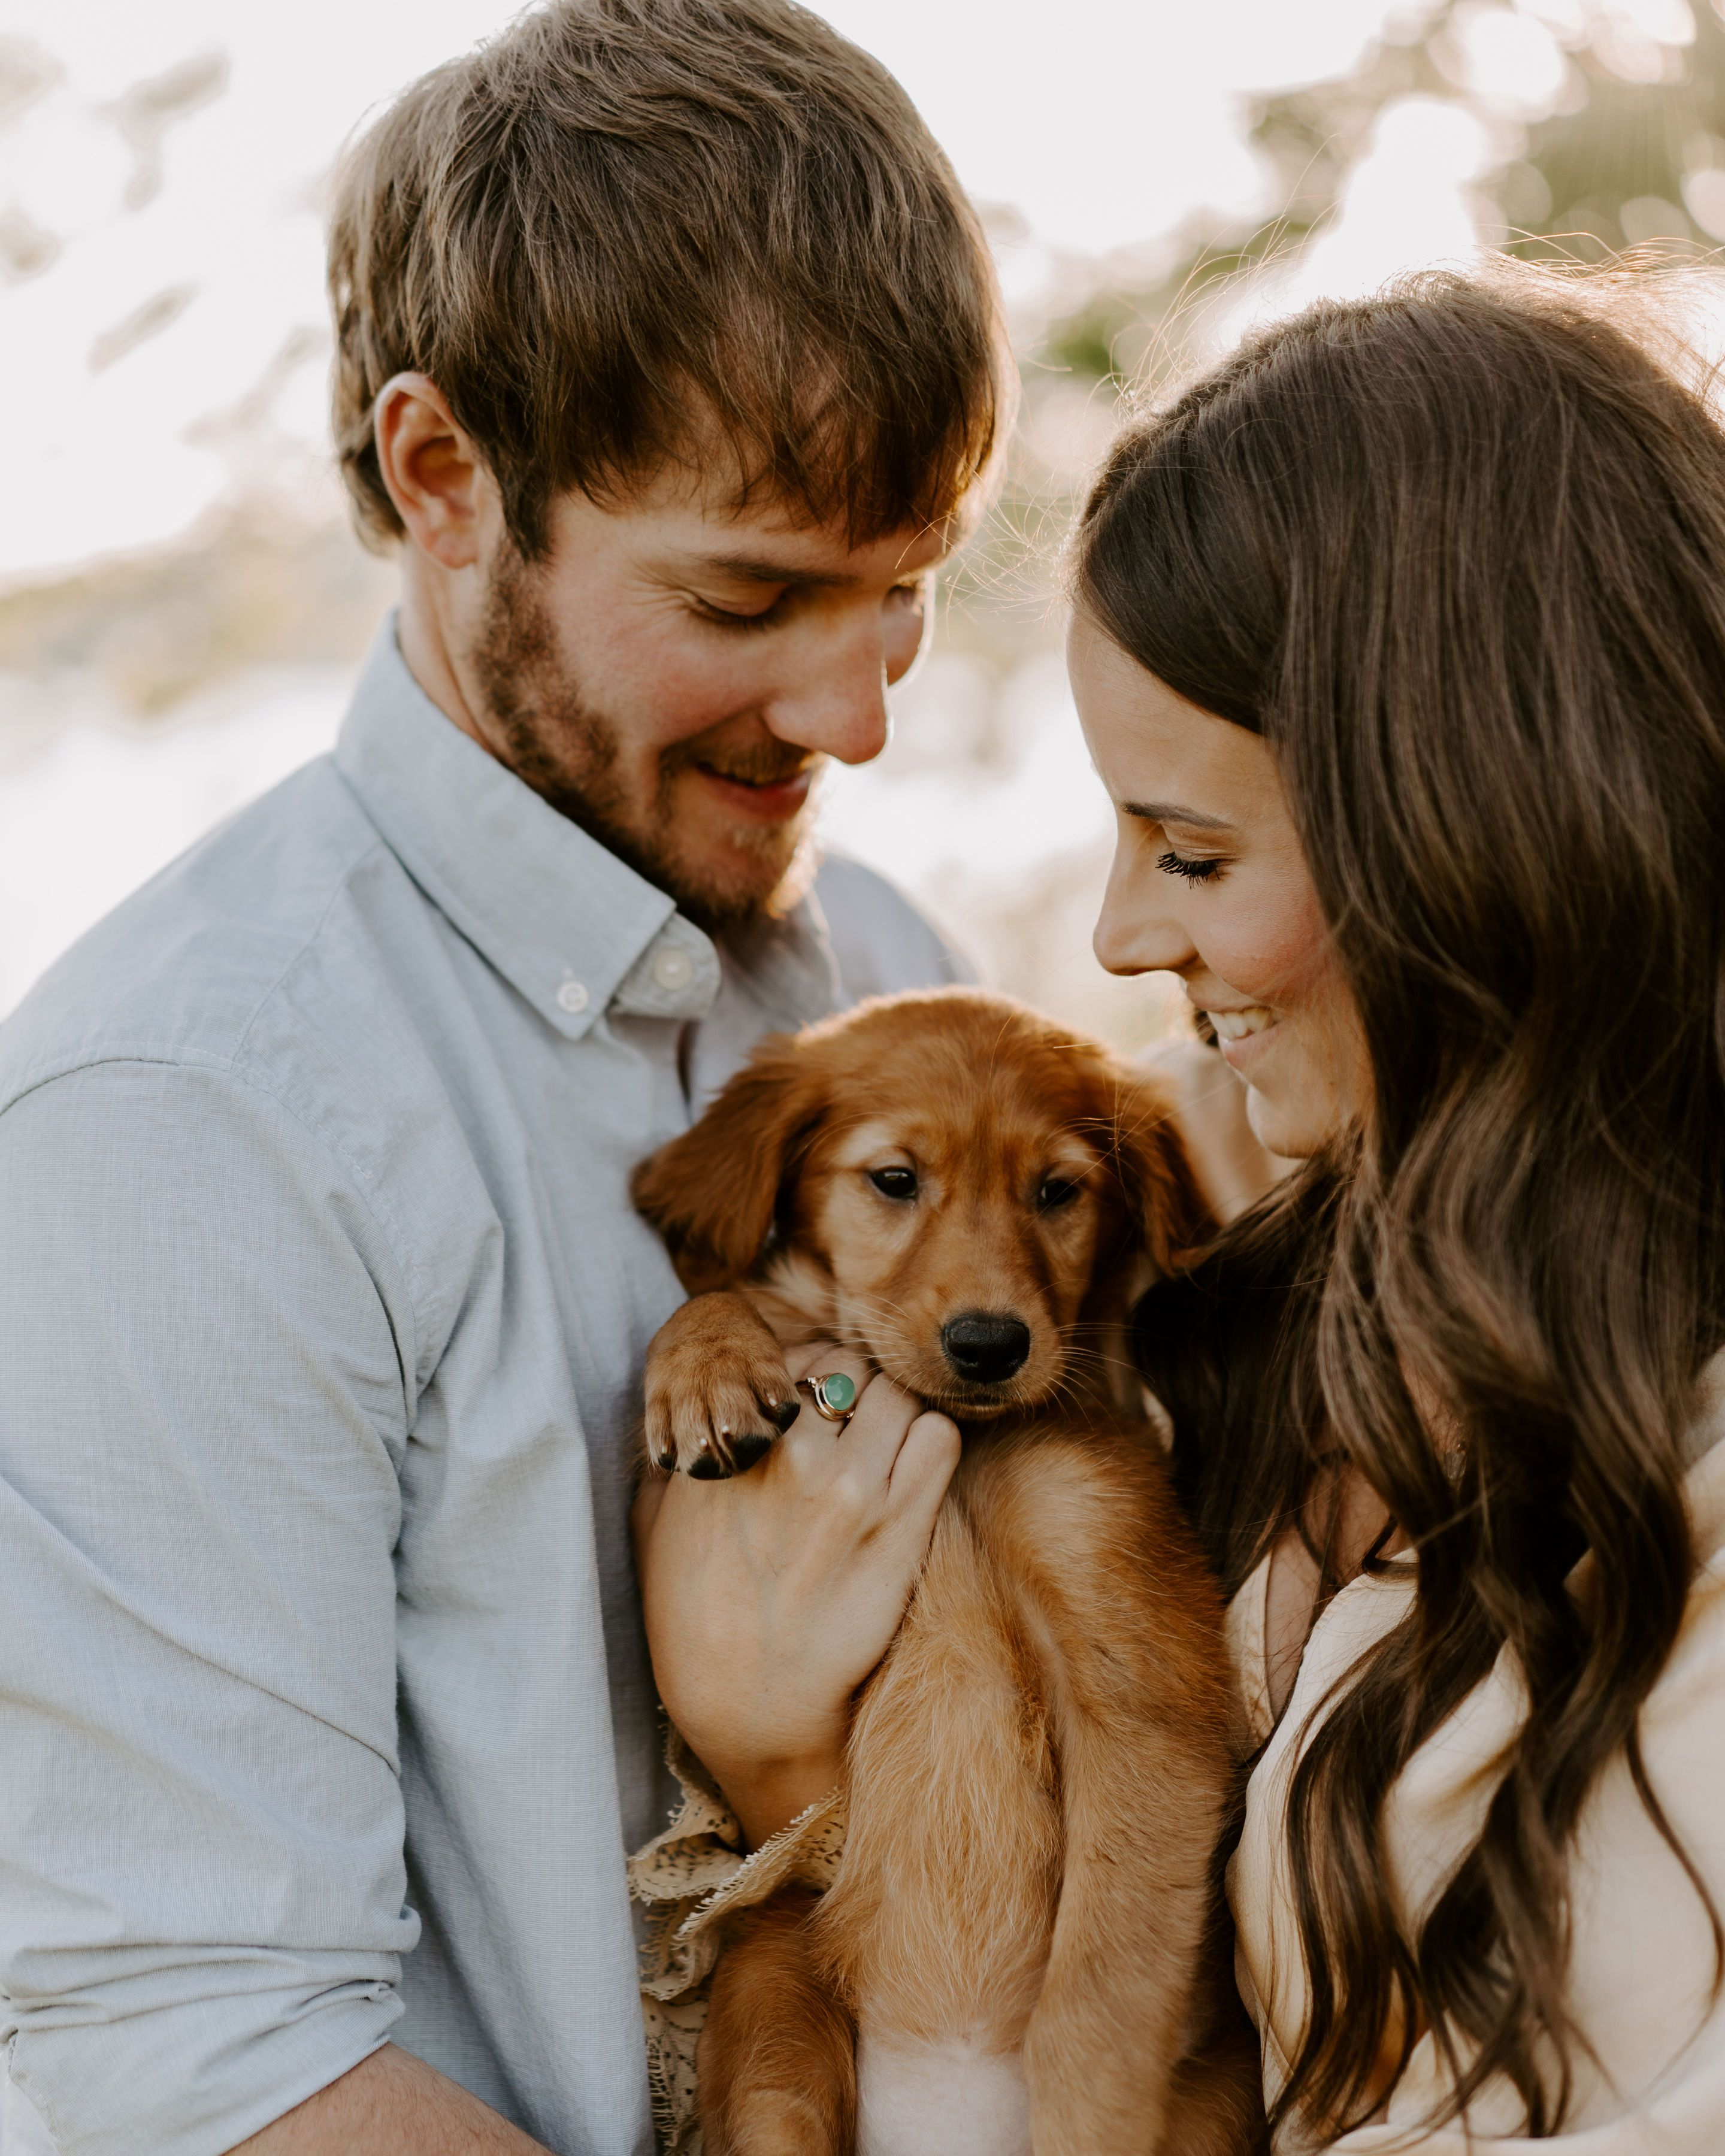 Couples Pictures With Puppy Avery Brian Dog Photoshoot Family Pet Photography Dog Family Pictures